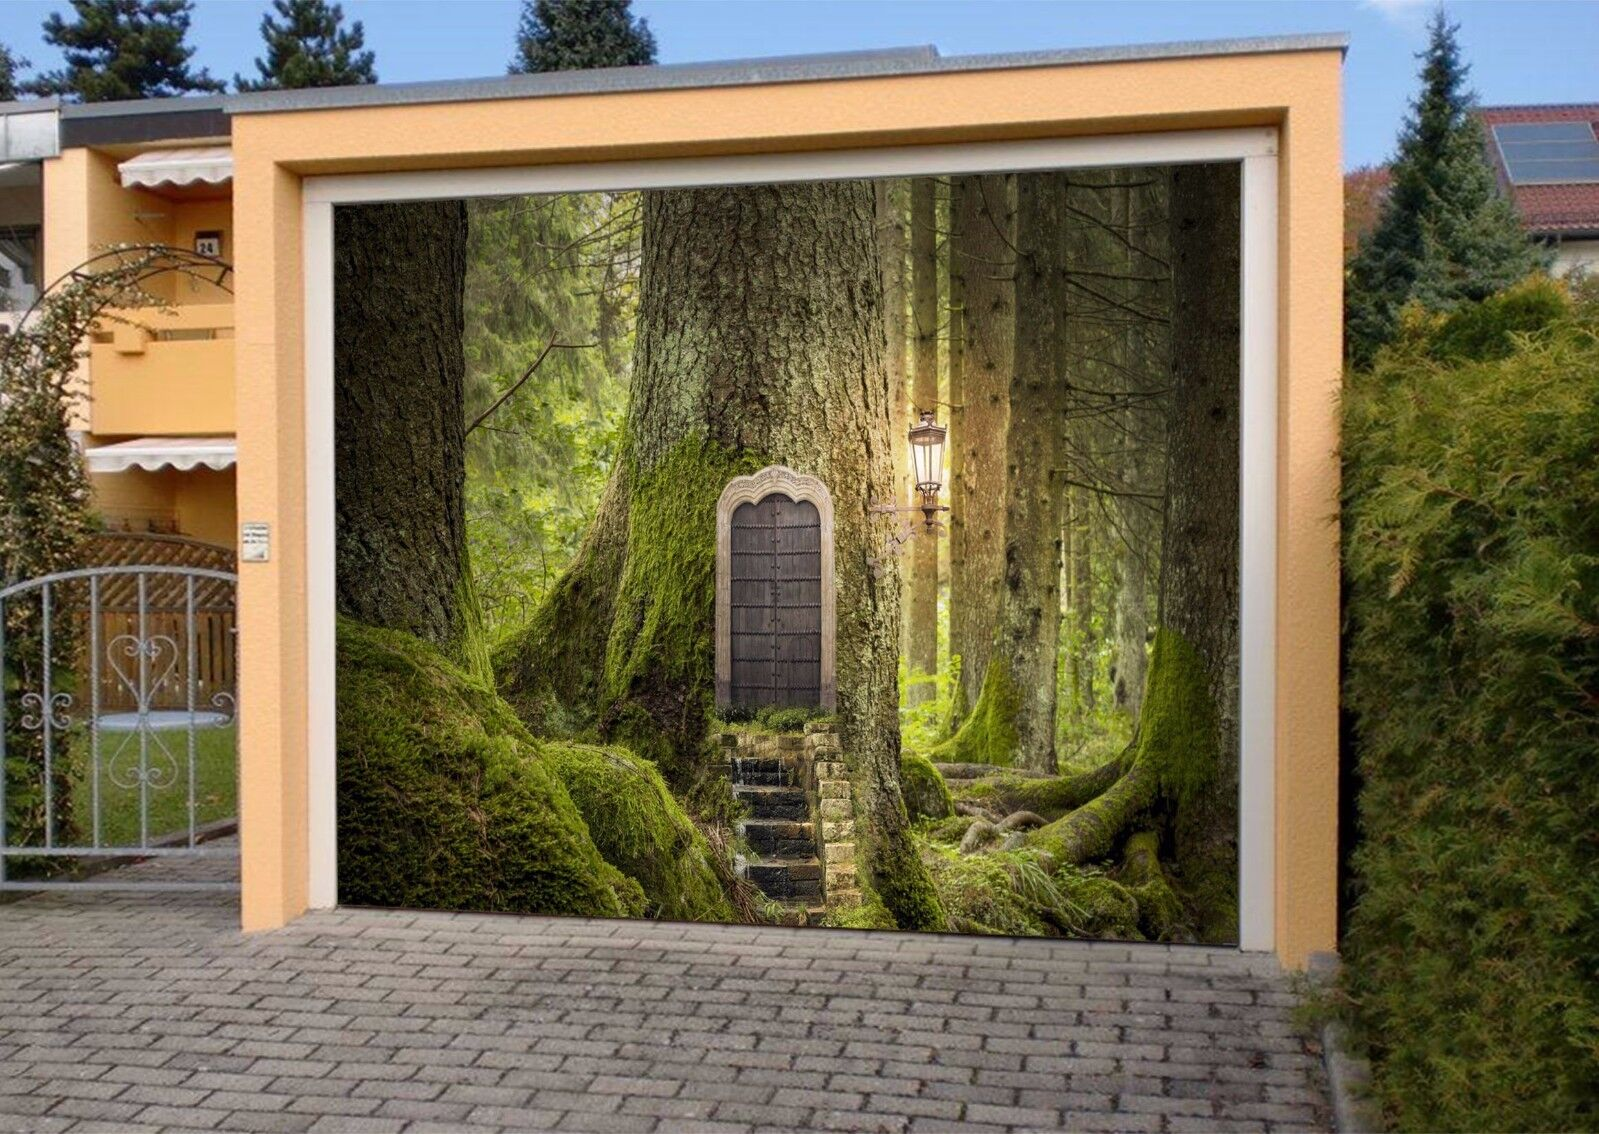 3D Tree House 733 Garage Door Murals Wall Print Decal Wall AJ WALLPAPER AU Carly